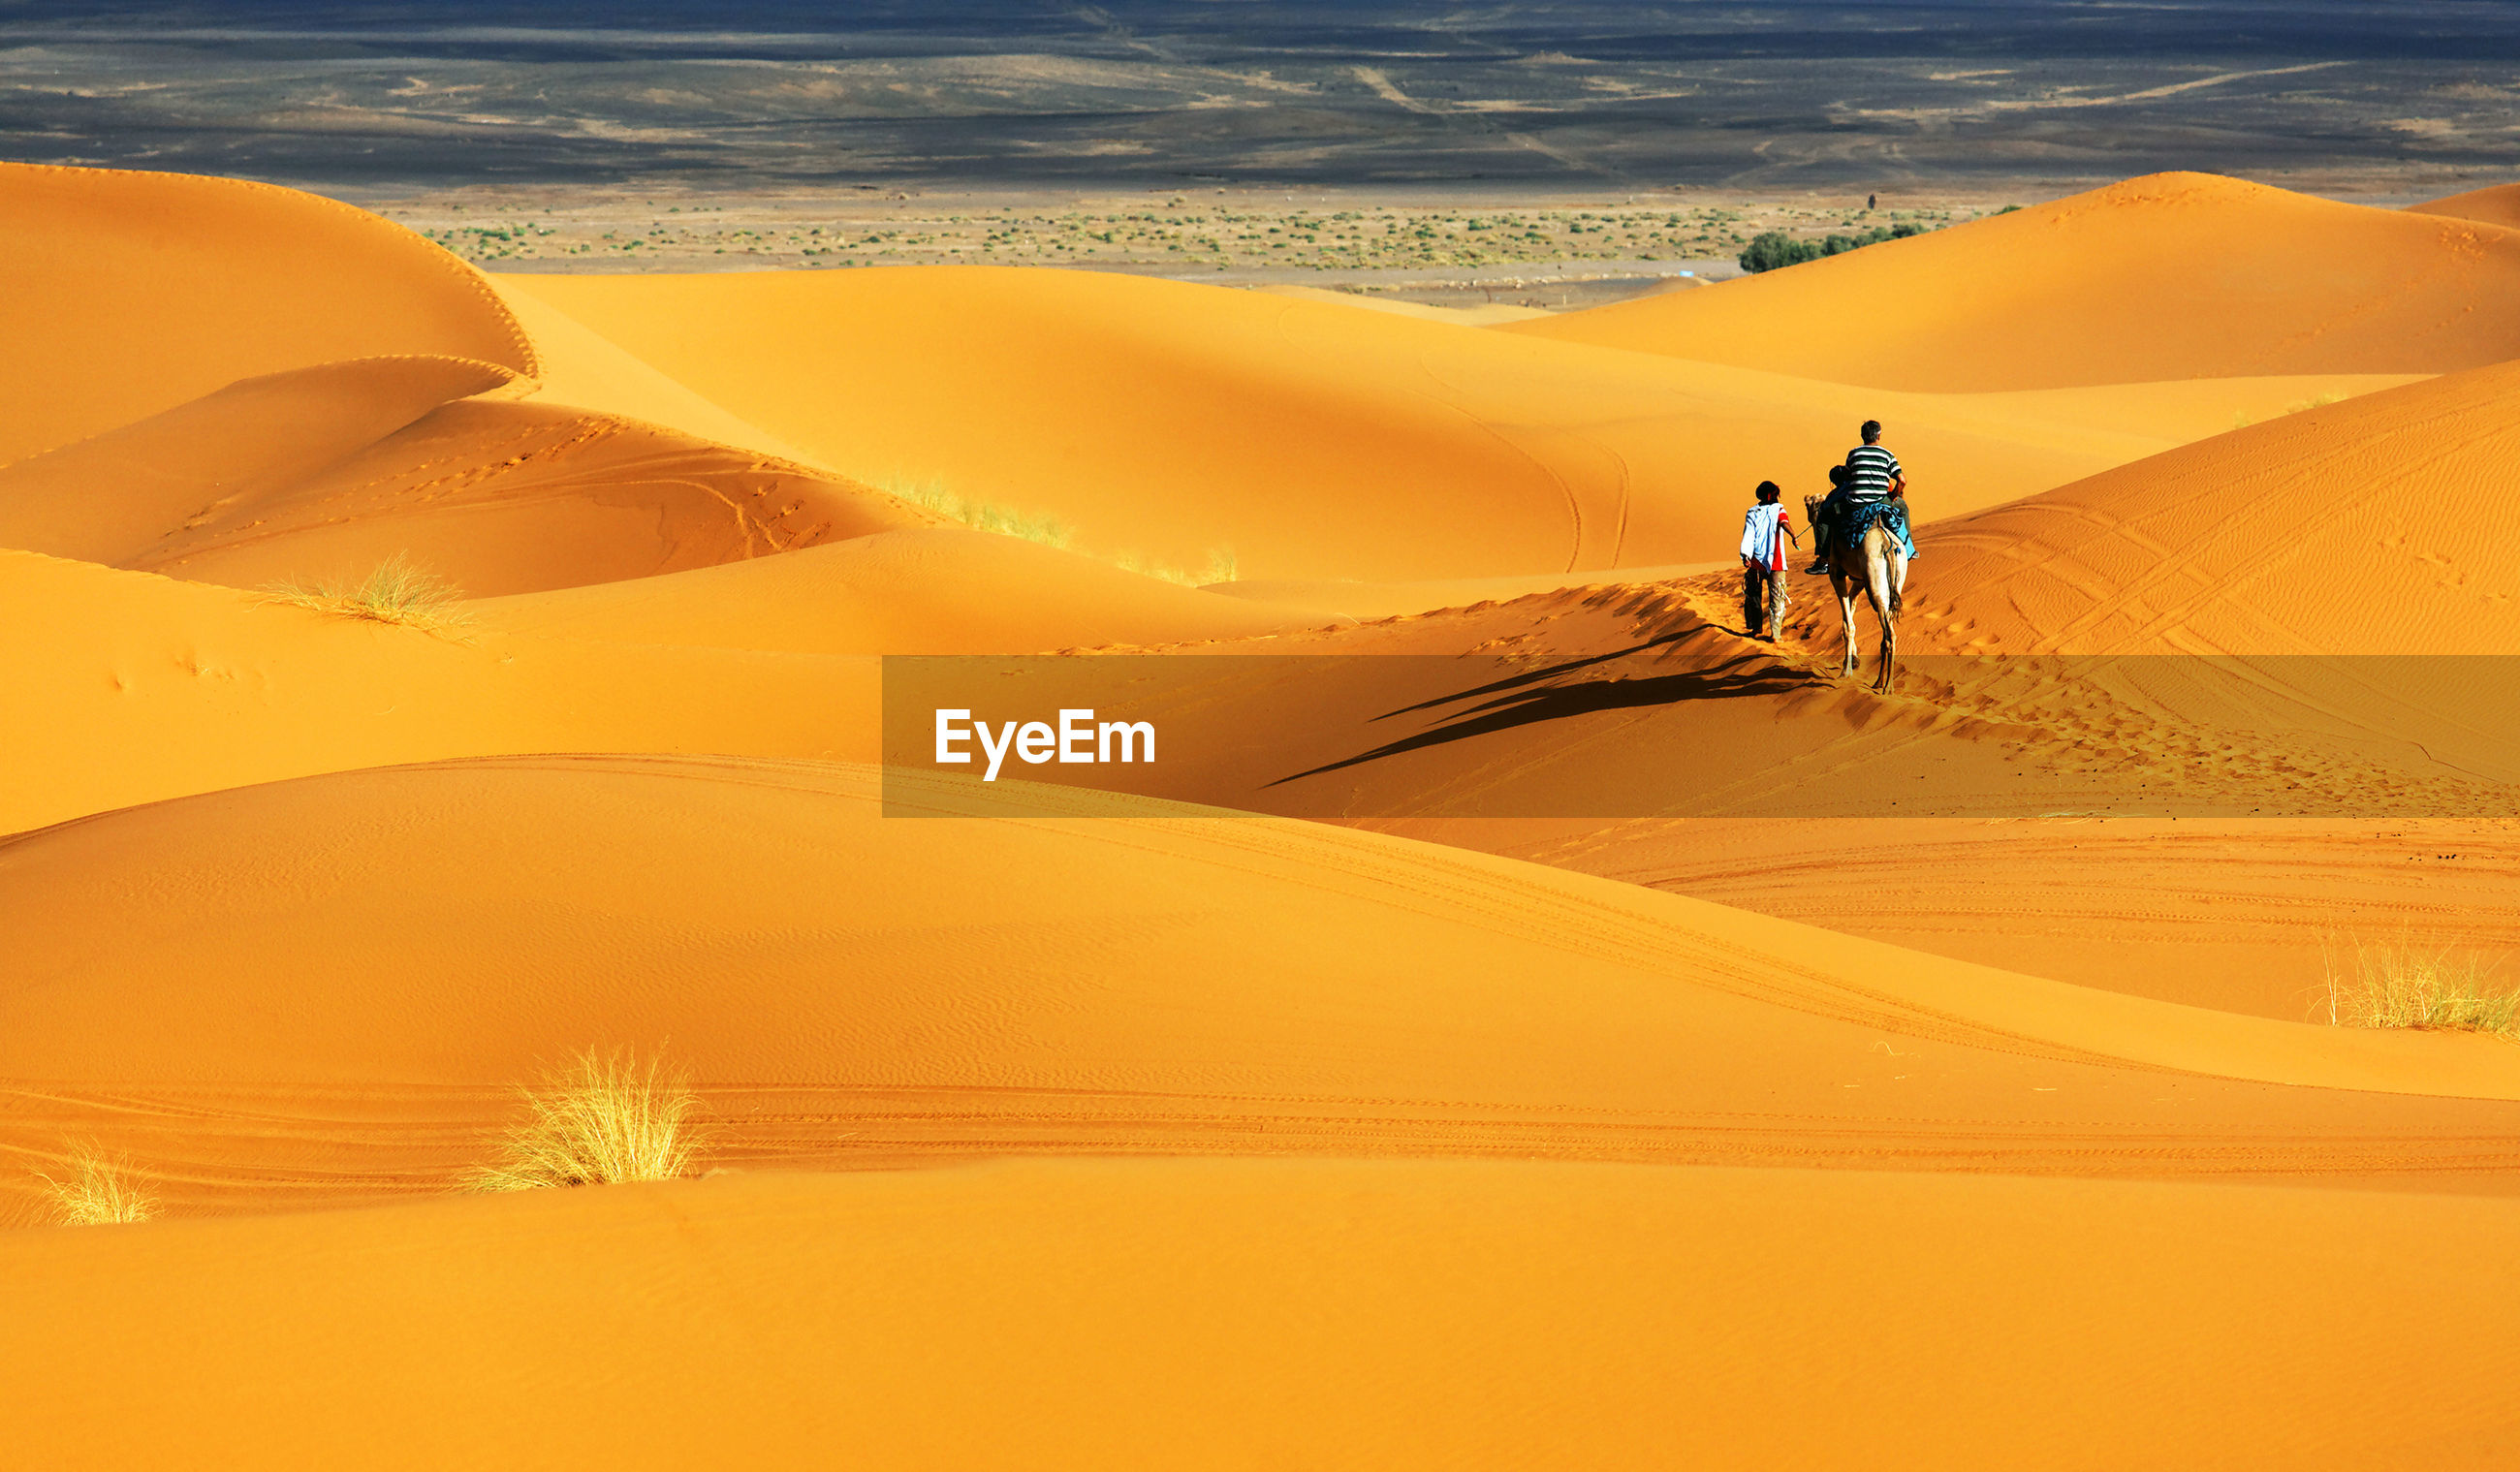 Rear view of people with camel on sand dunes